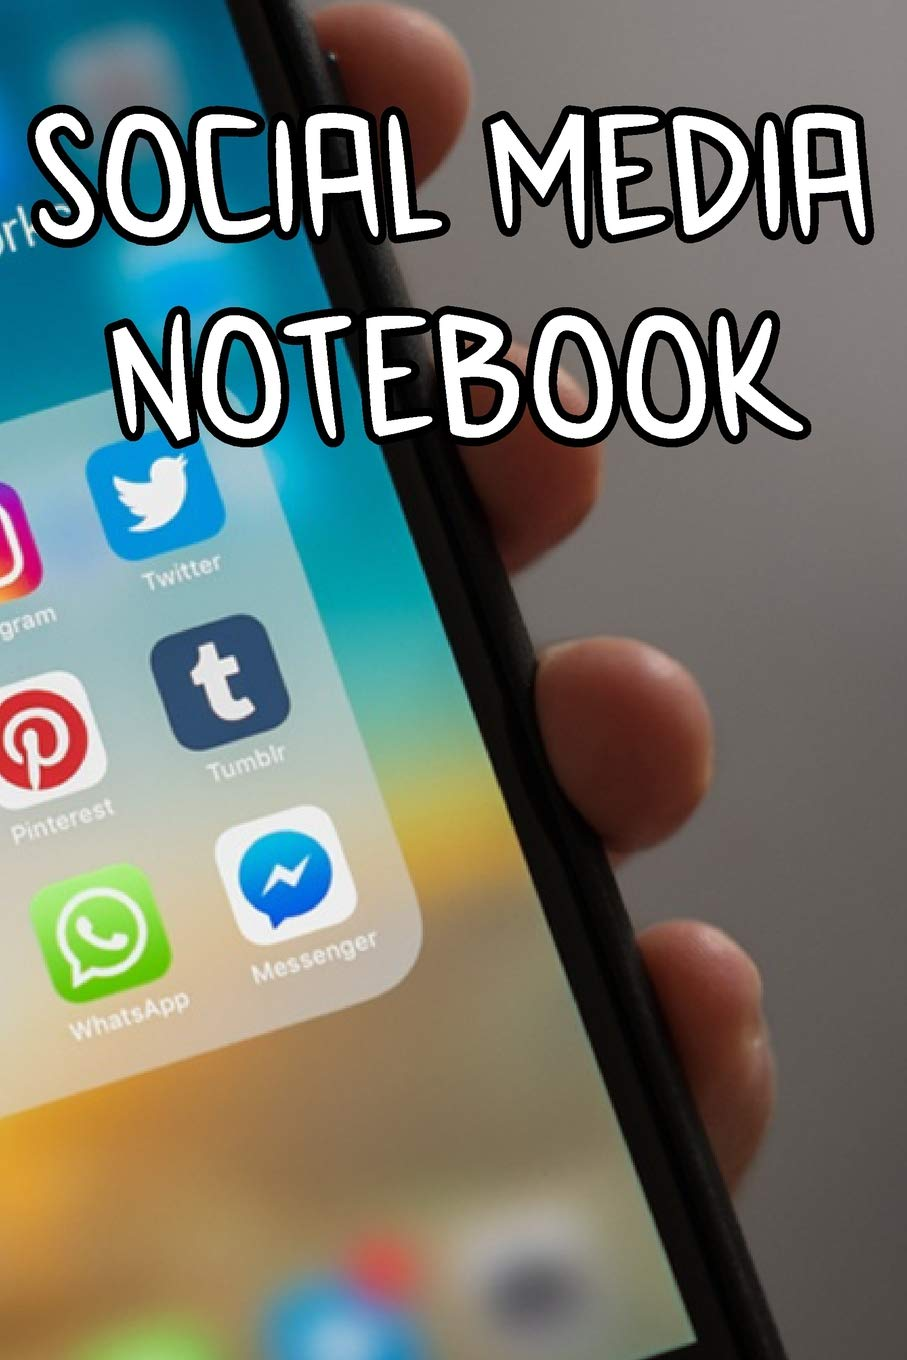 Social Media Notebook: Record Notes of Your Ideas, Business Social